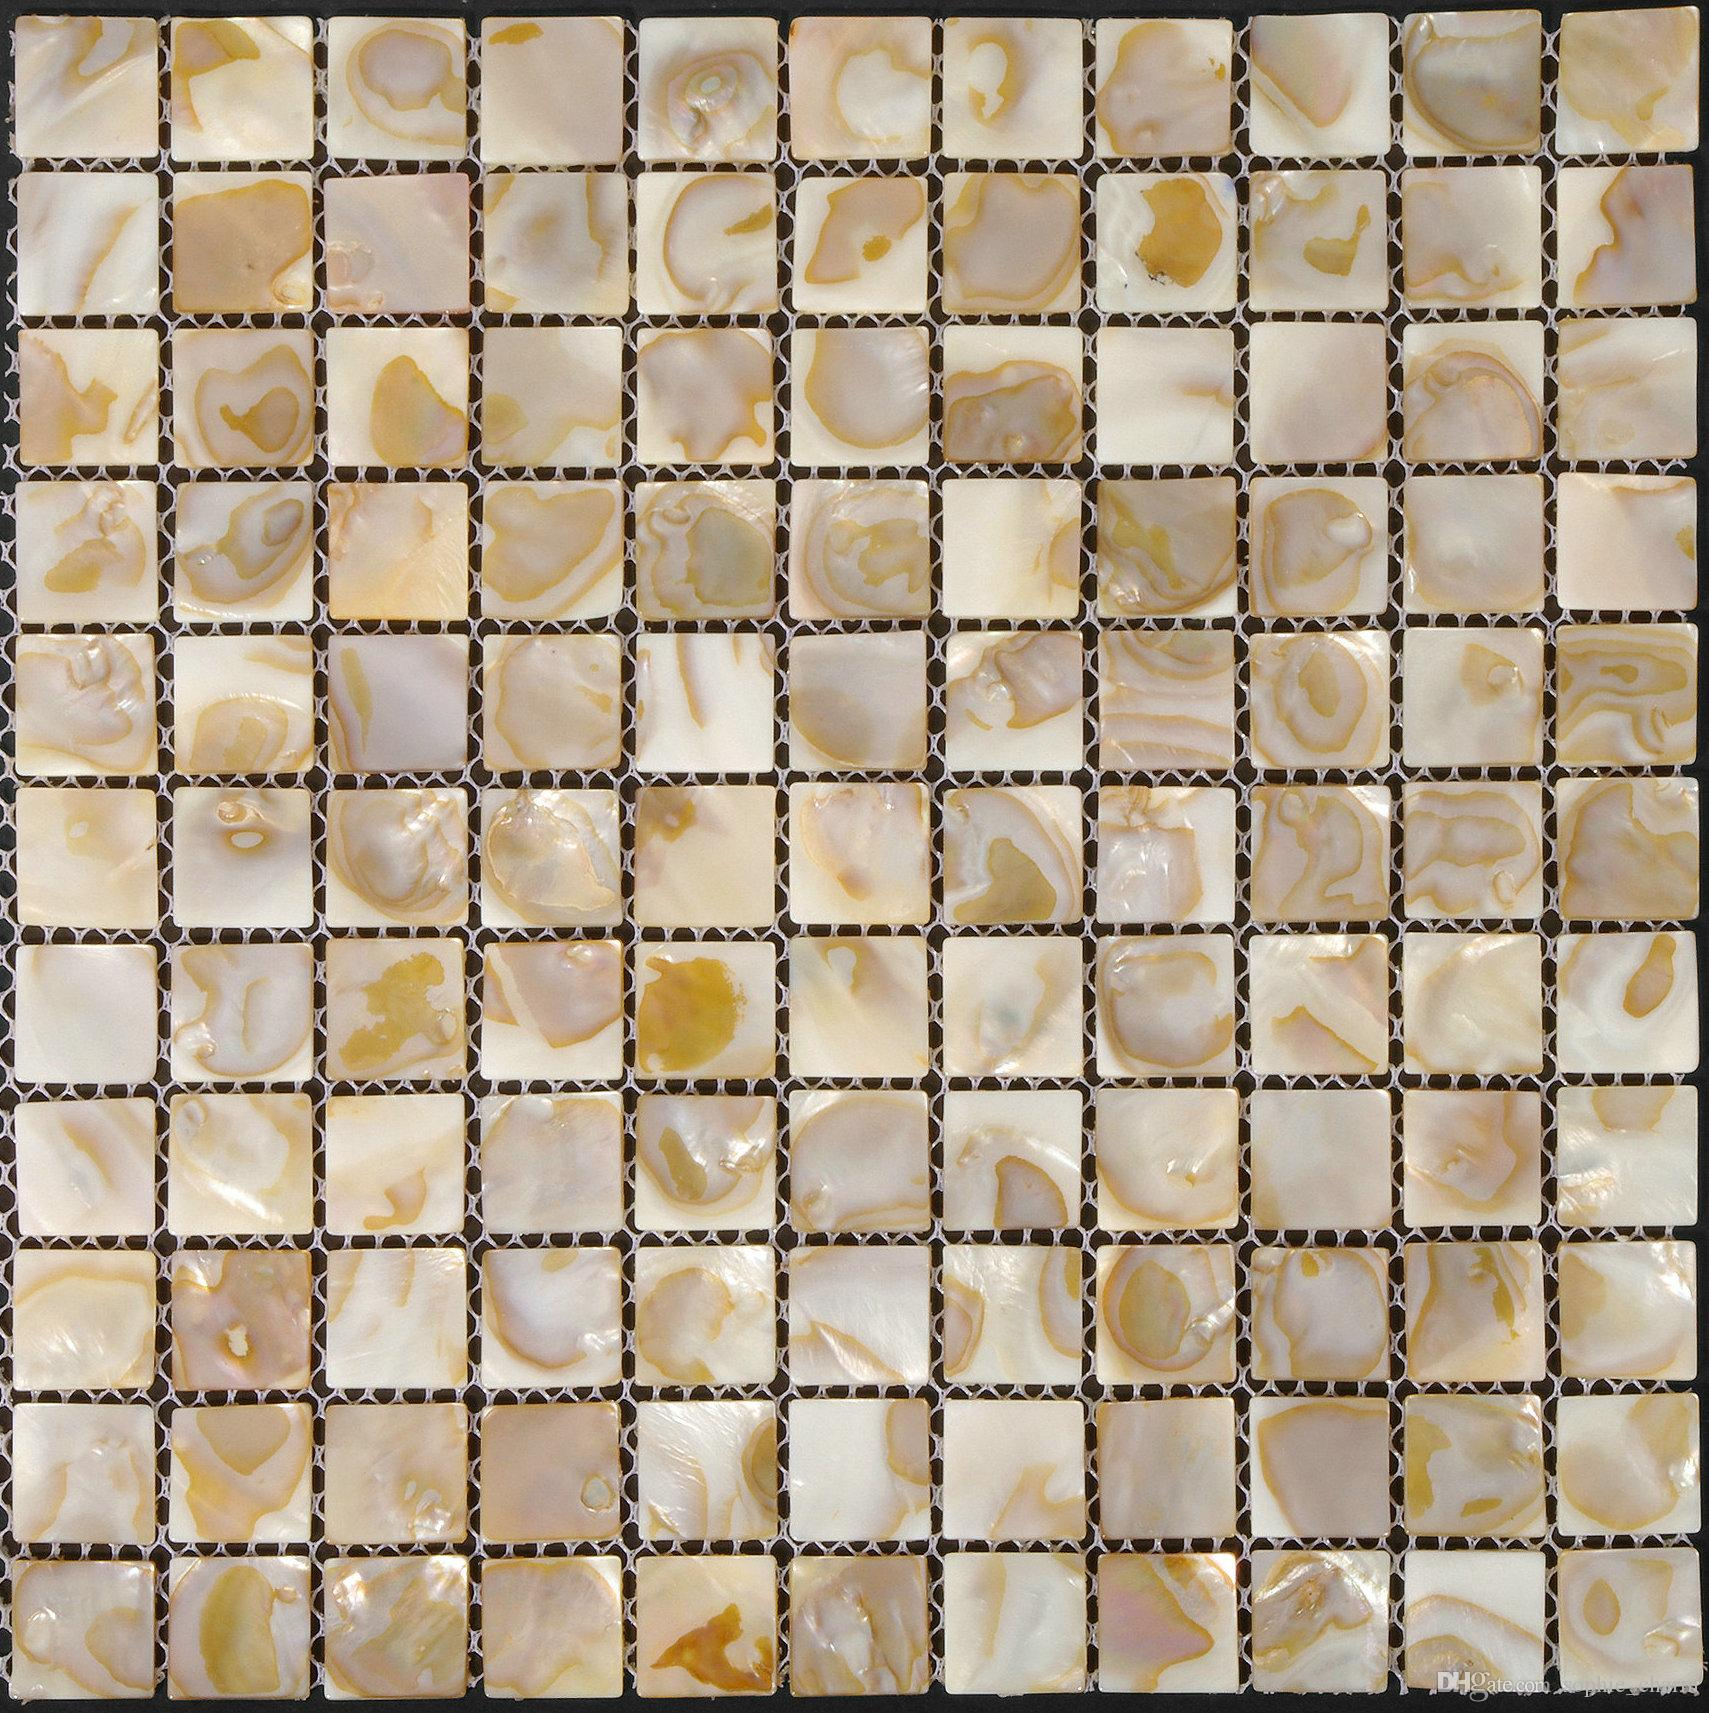 25x25mm 1x1 inch Natural Mother of pearl tile backsplash fresh water shell mosaic bathroom tiles MOP019